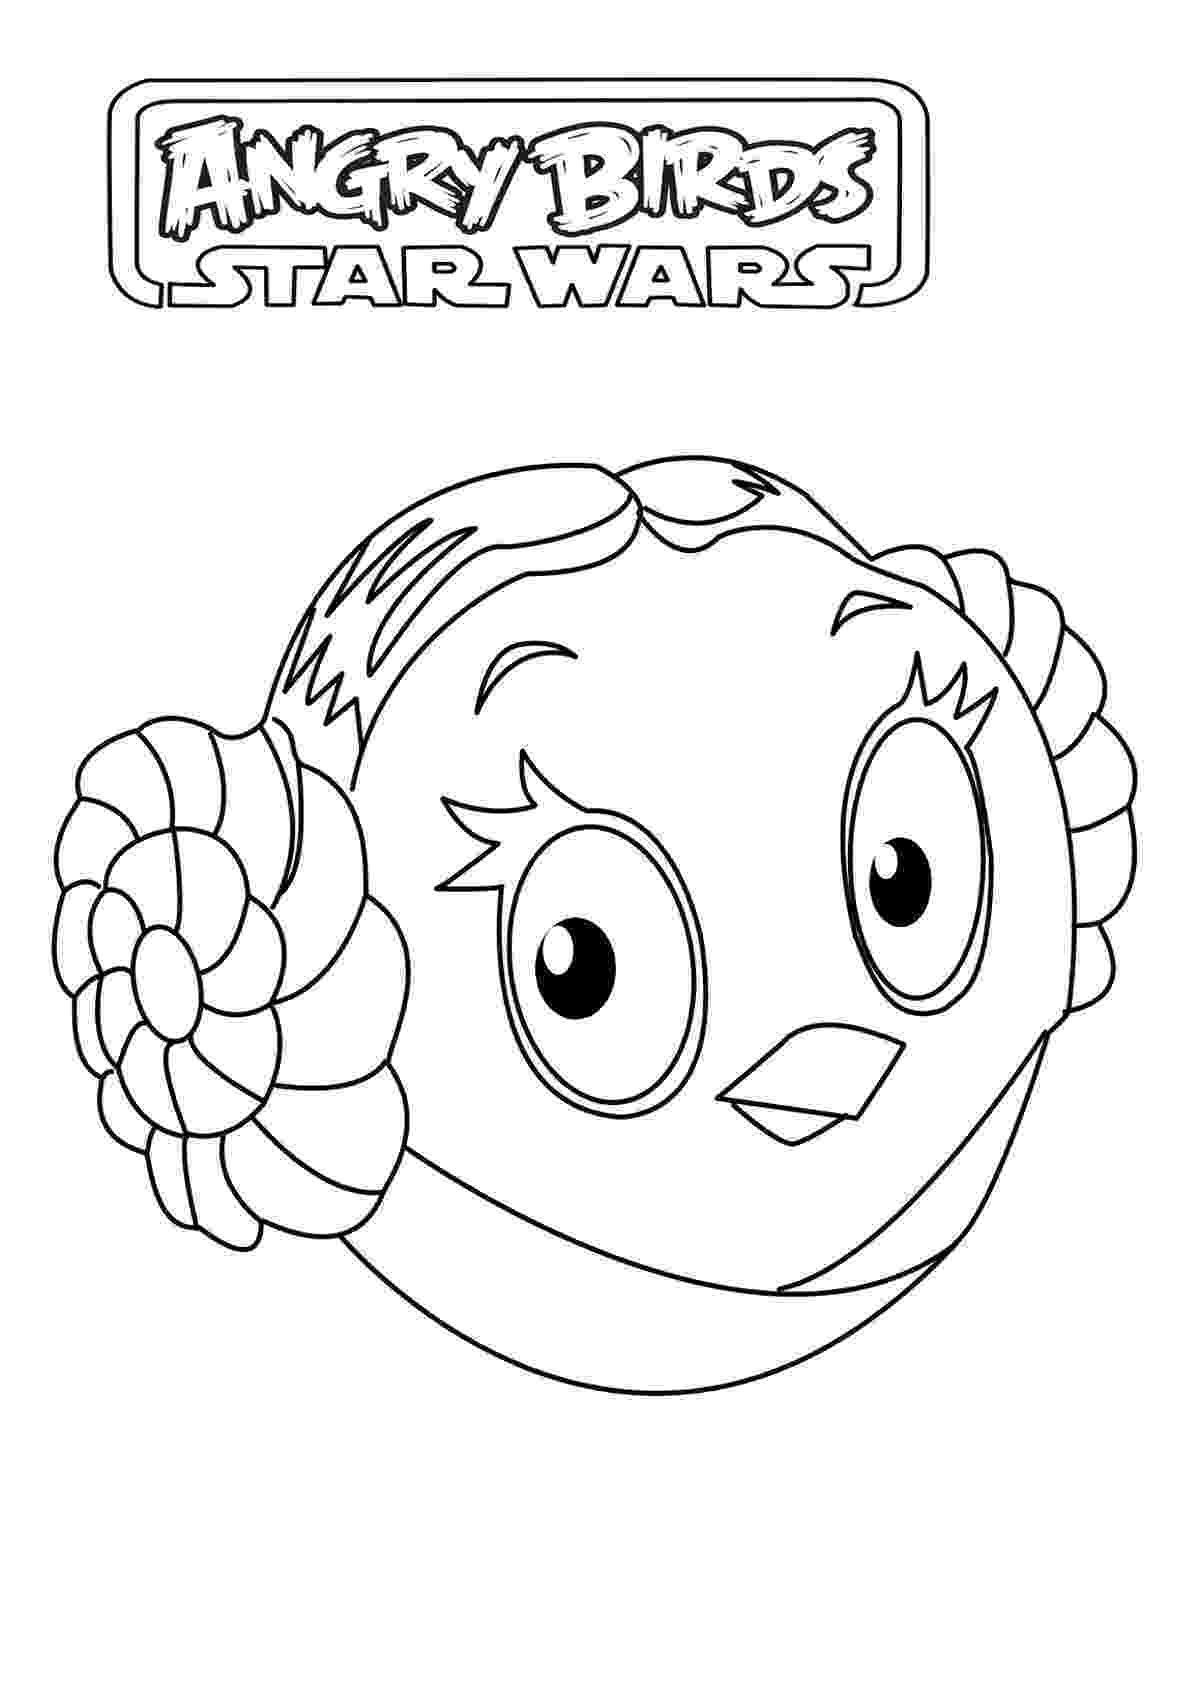 star wars angry birds coloring pages angry birds star wars free to color for children angry pages birds star angry wars coloring